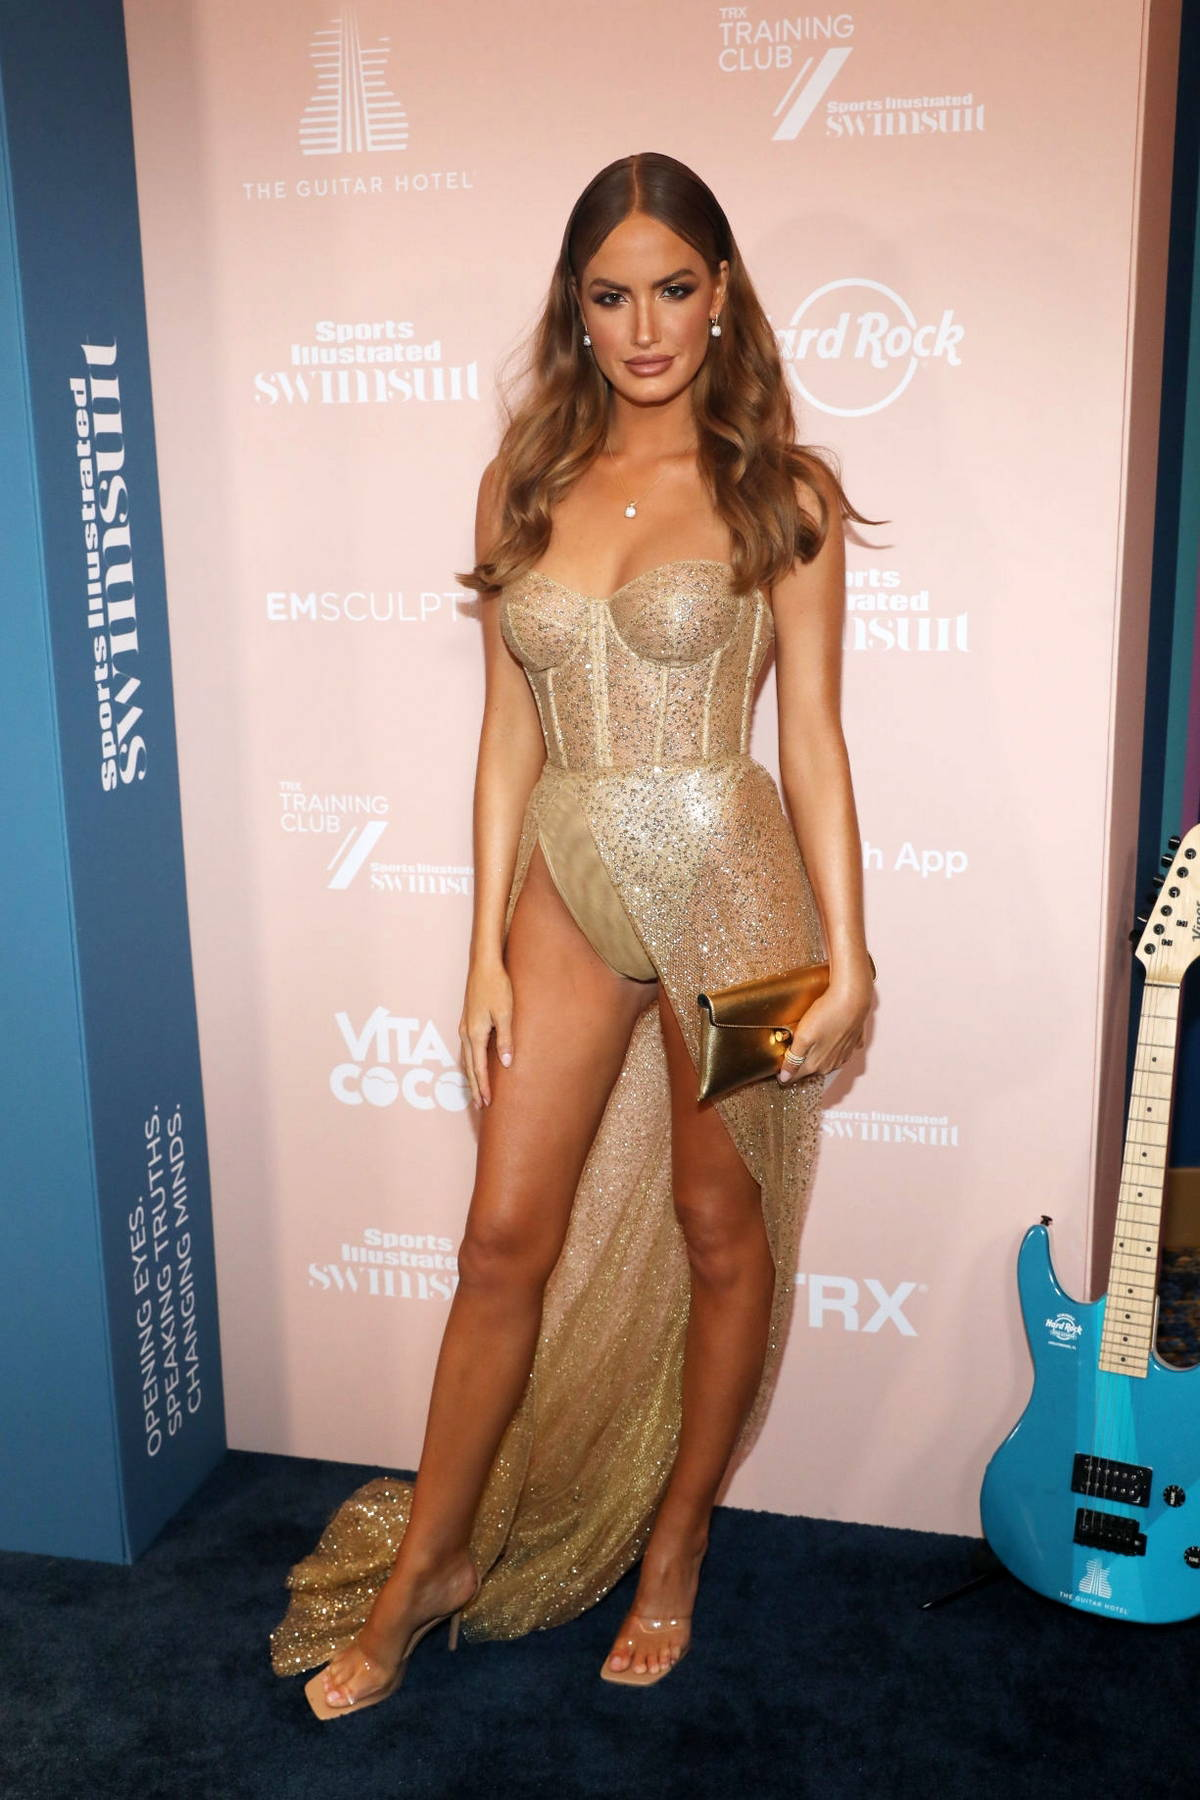 Haley Kalil attends the Sports Illustrated Swimsuit 2021 Issue Concert at Hard Rock Live in Hollywood, Florida